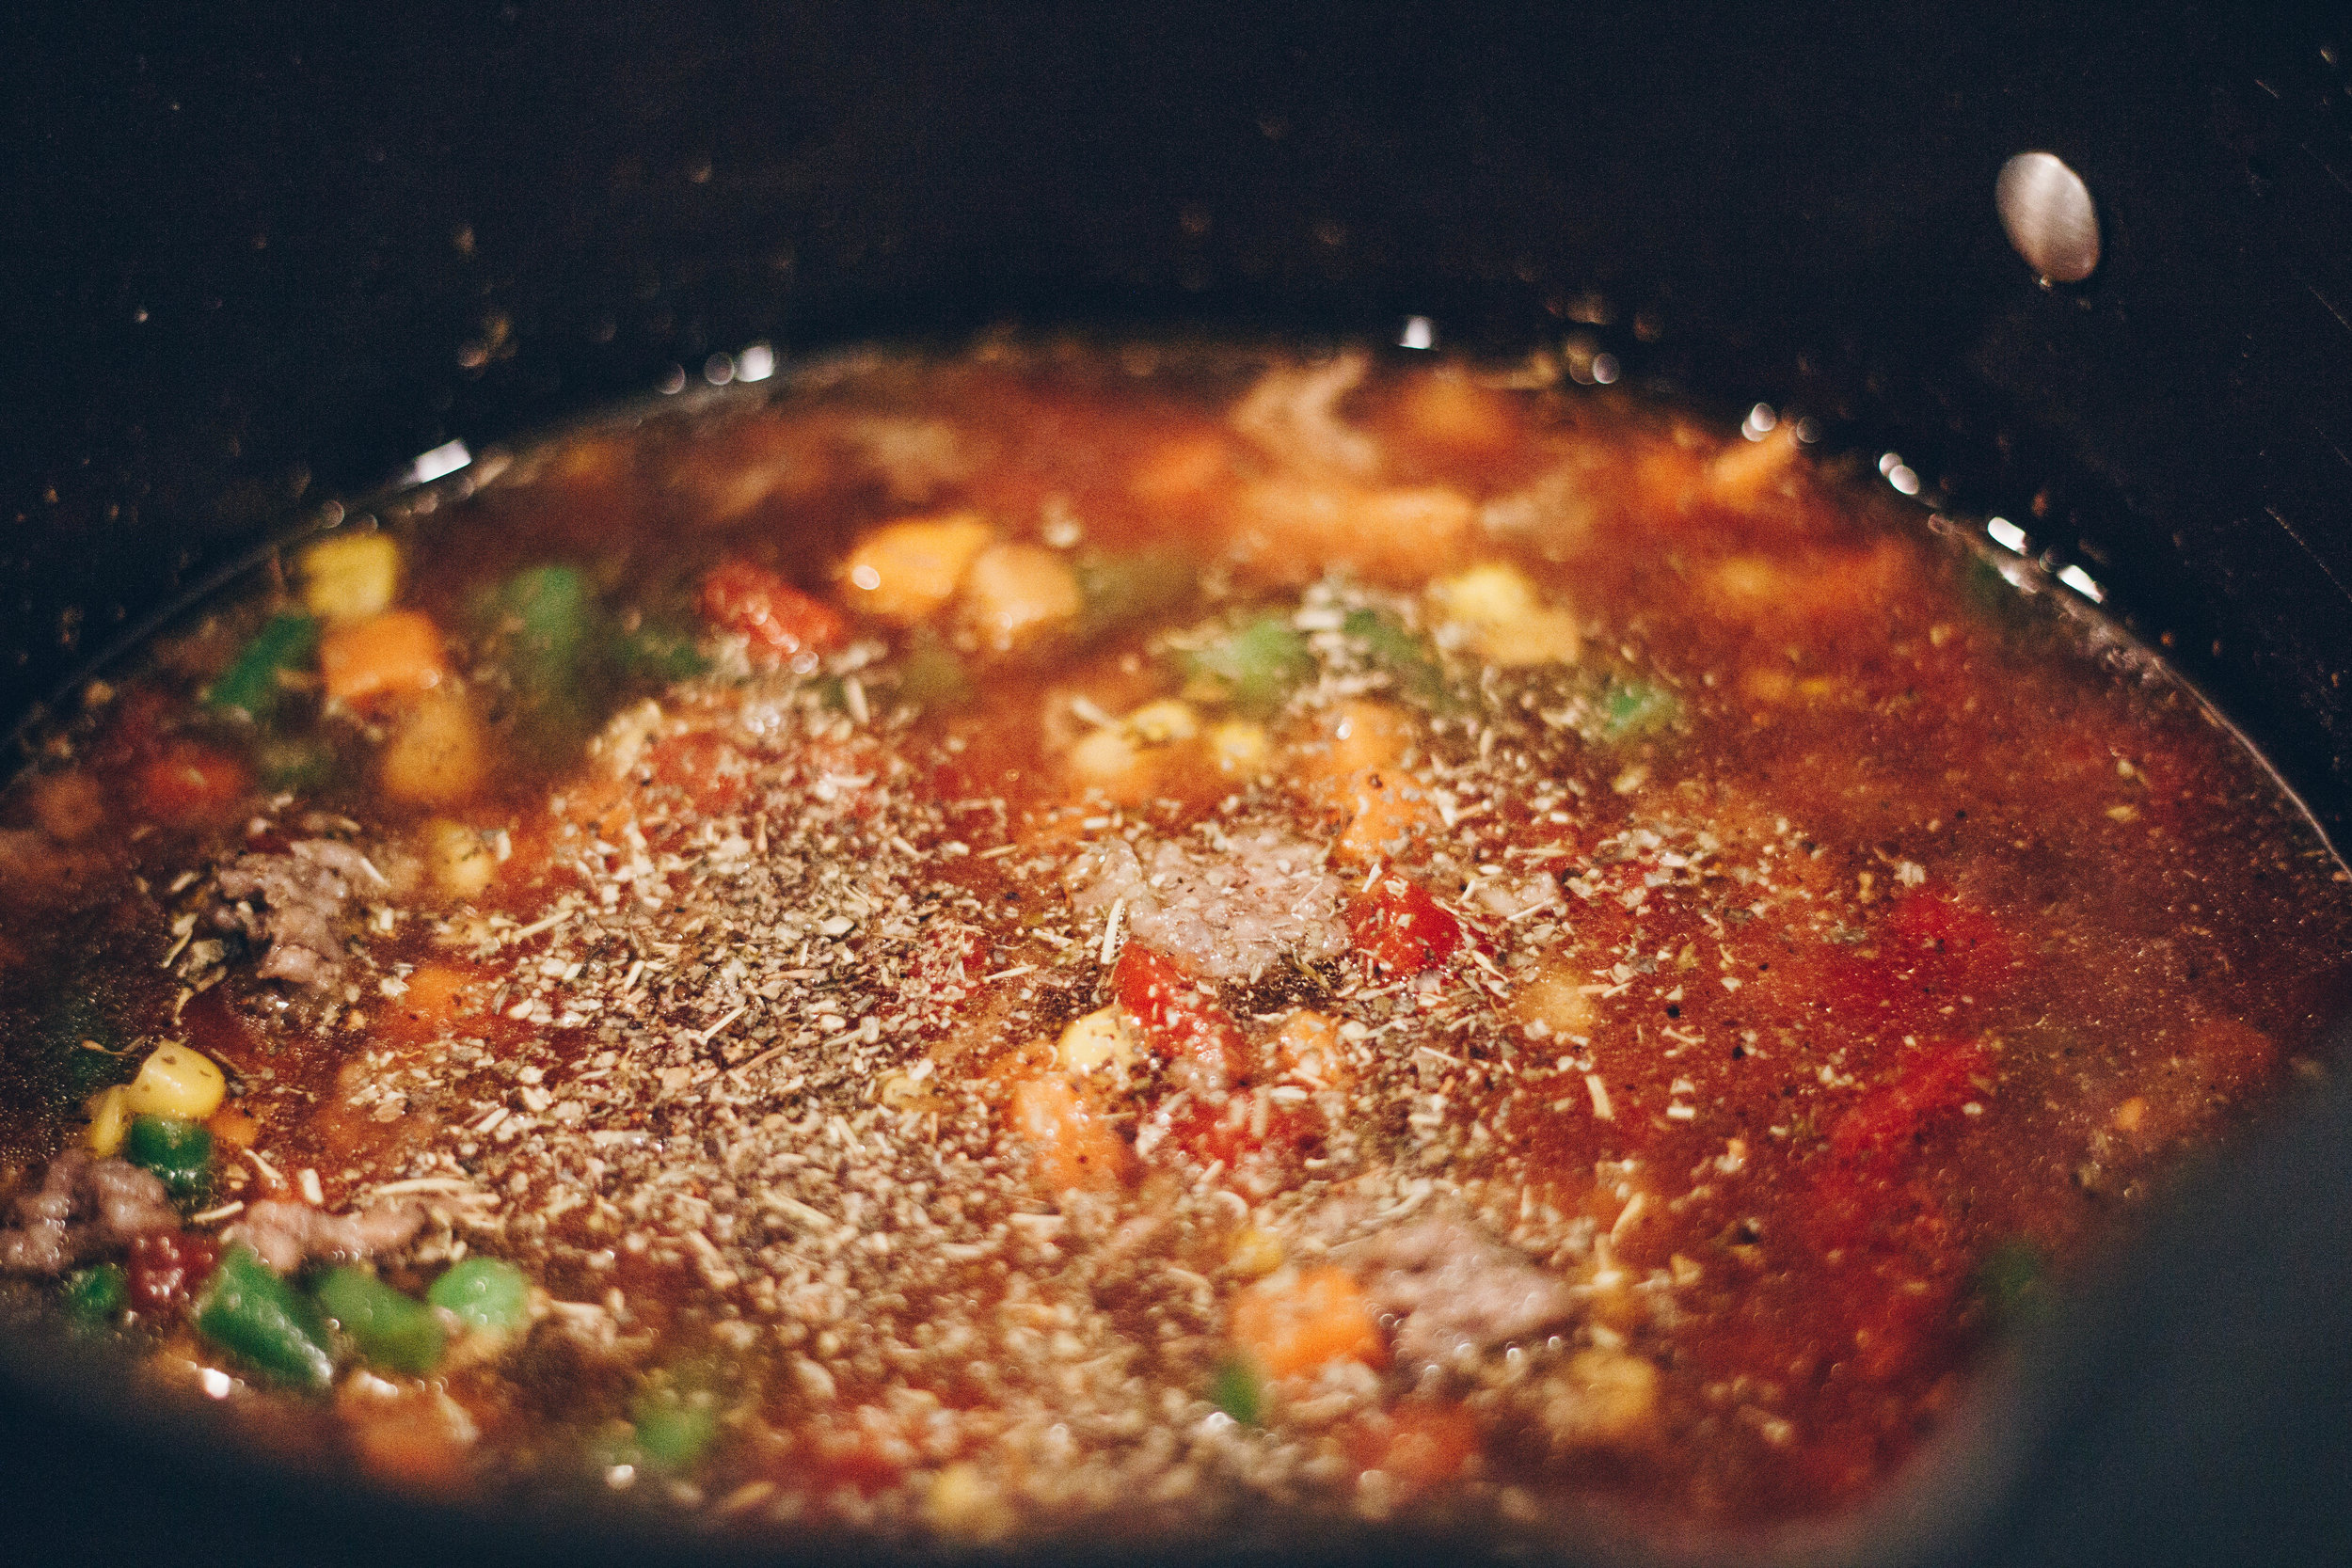 december3-39.jpg - Easy Vegetable Soup Recipe by Indianapolis blogger Trendy in Indy